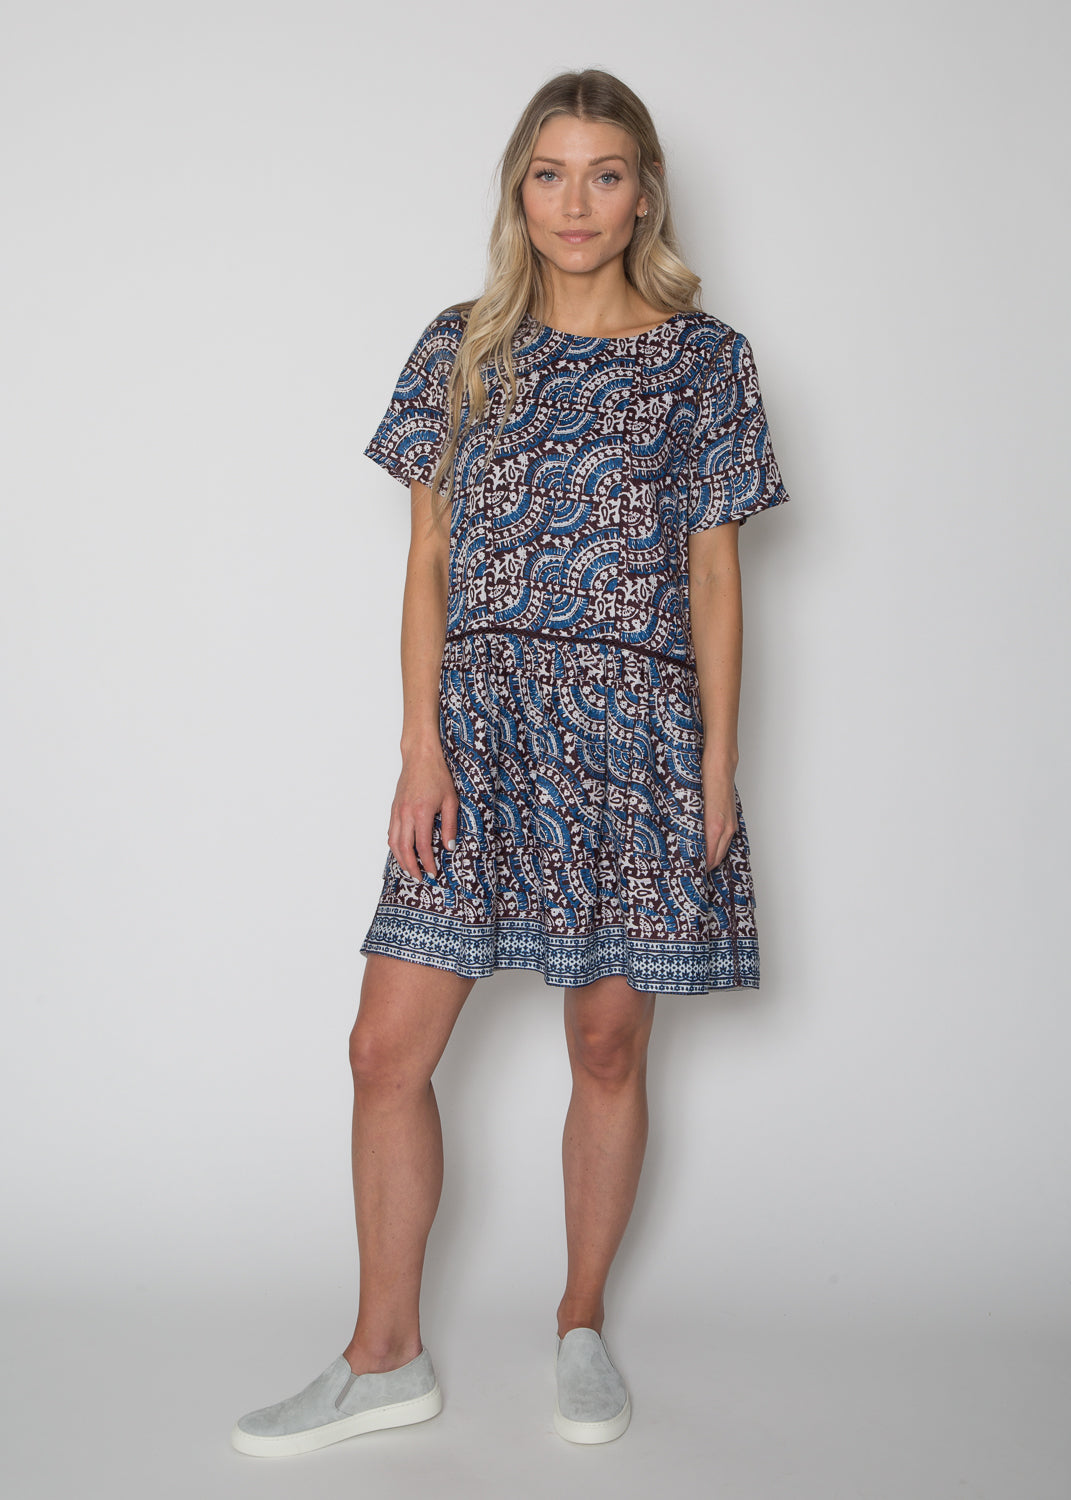 Sea NY Luella Day Dress